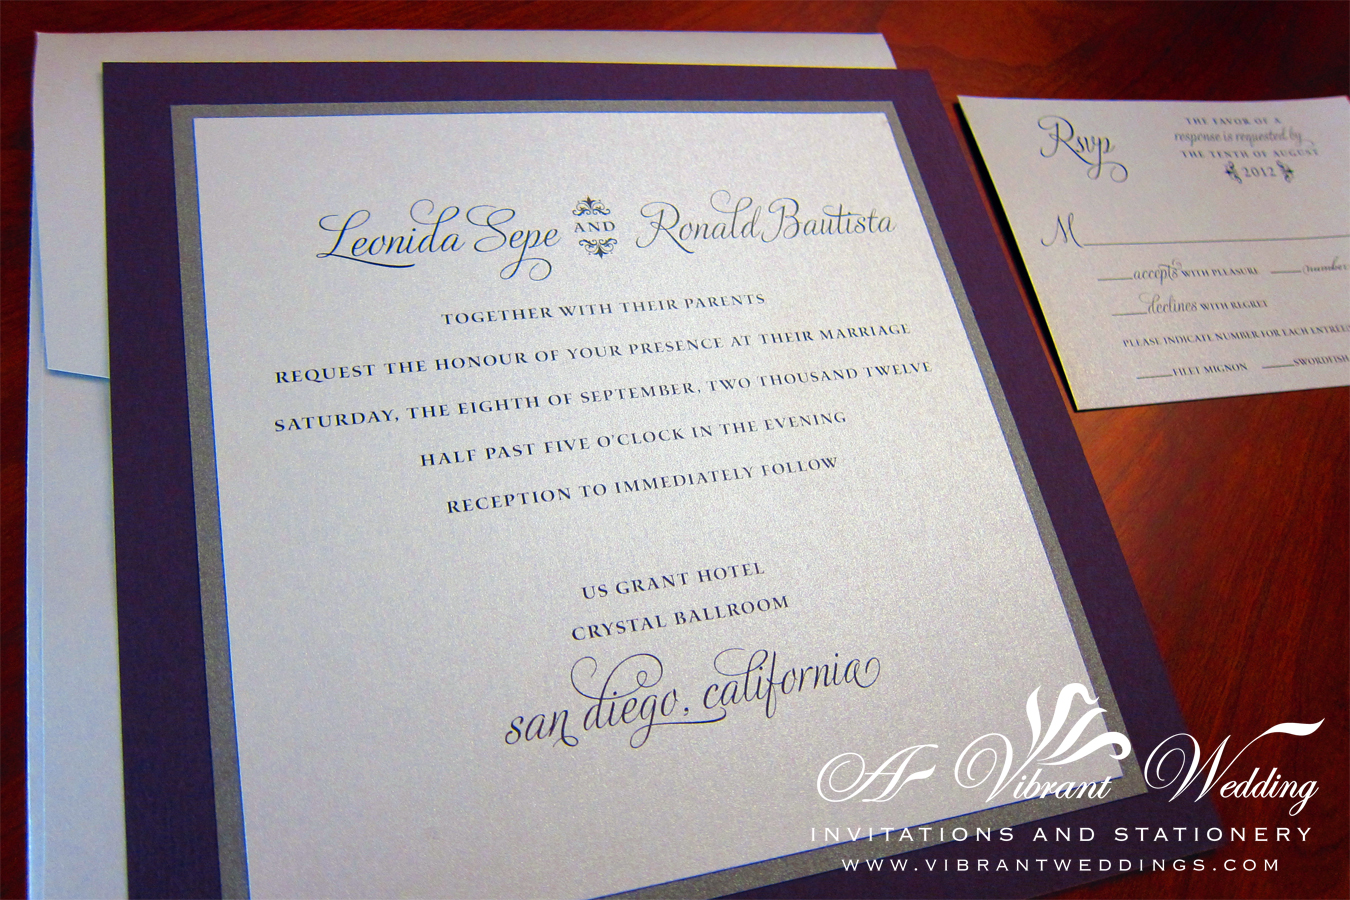 Silver And Purple Wedding Invitations: A Vibrant Wedding